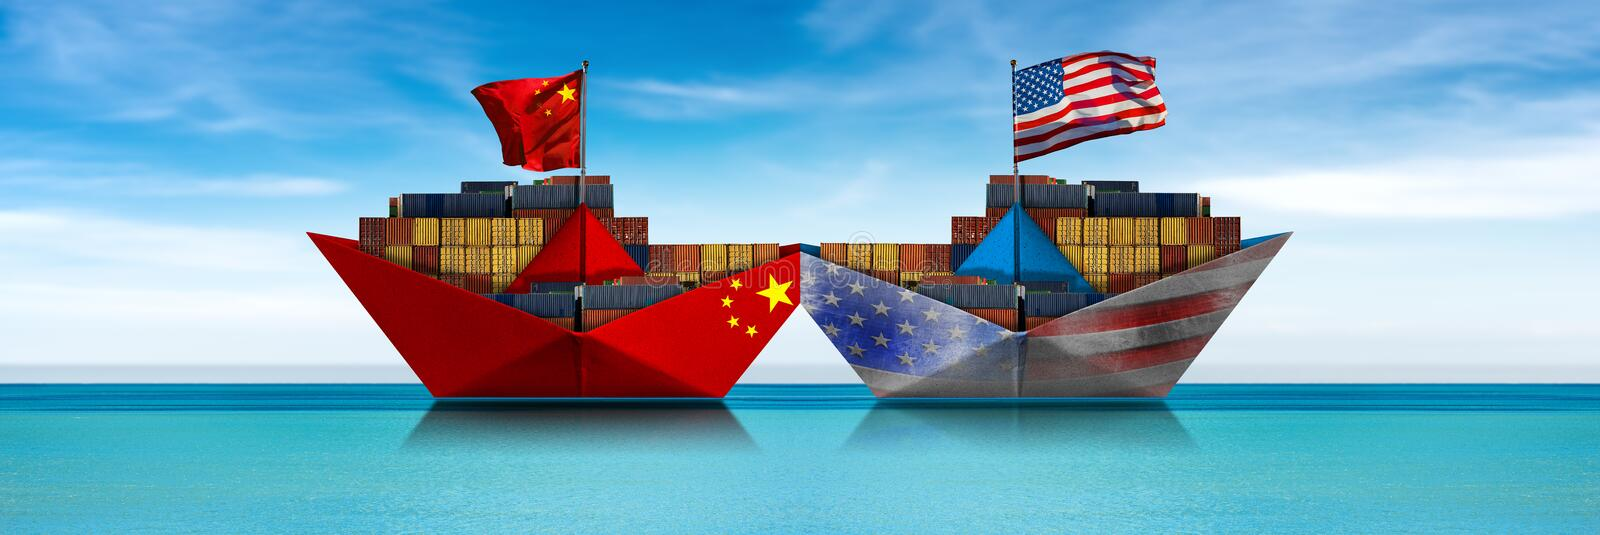 USA and China trade war - Collision of two cargo container ships stock image